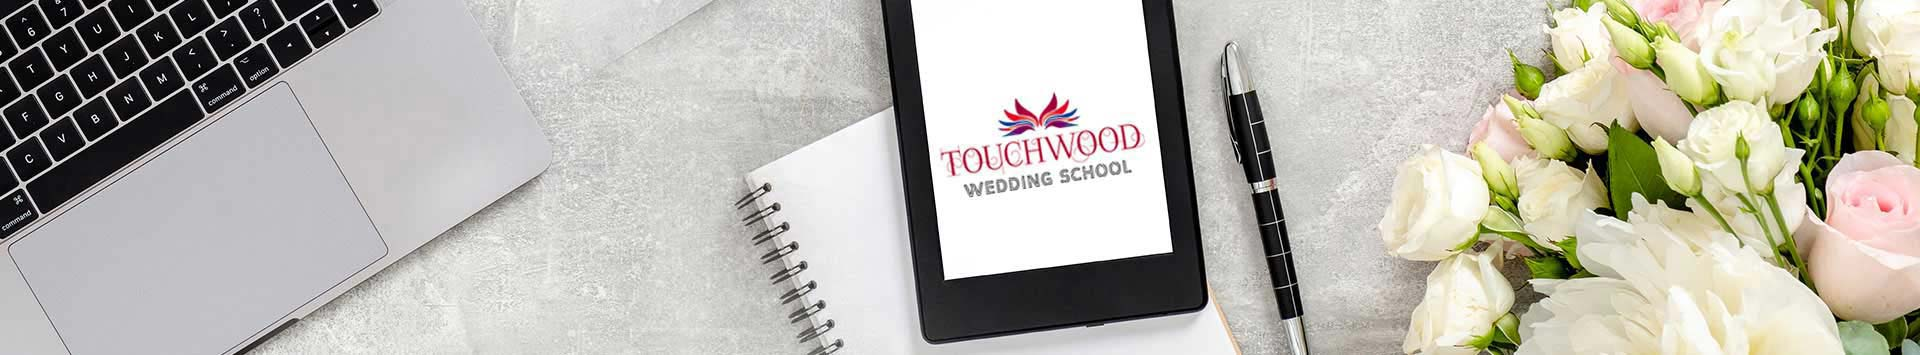 Contact Touchwood Wedding School